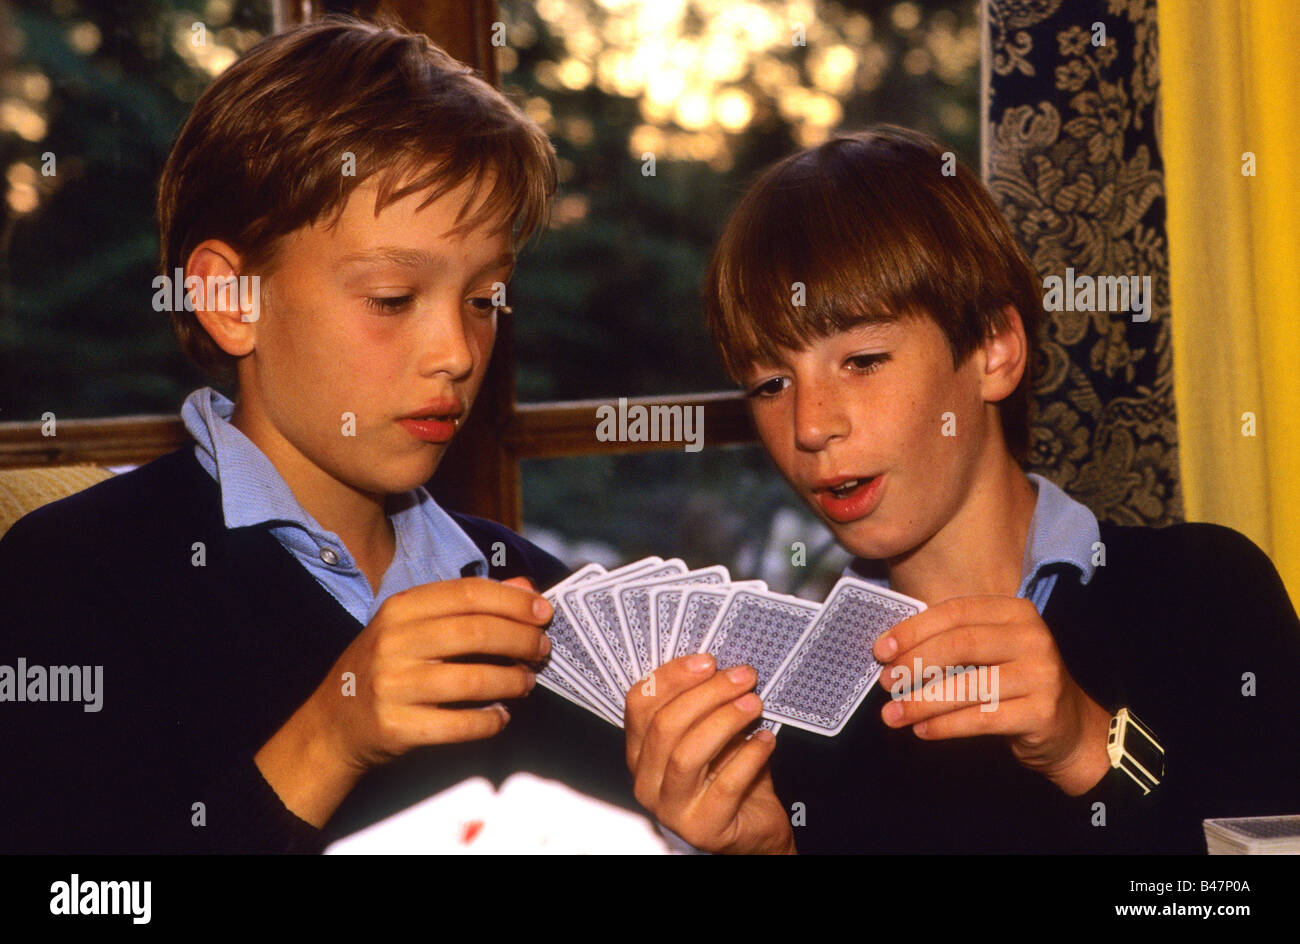 Two boys at Cothill School playing cards at the end of the school day - Stock Image